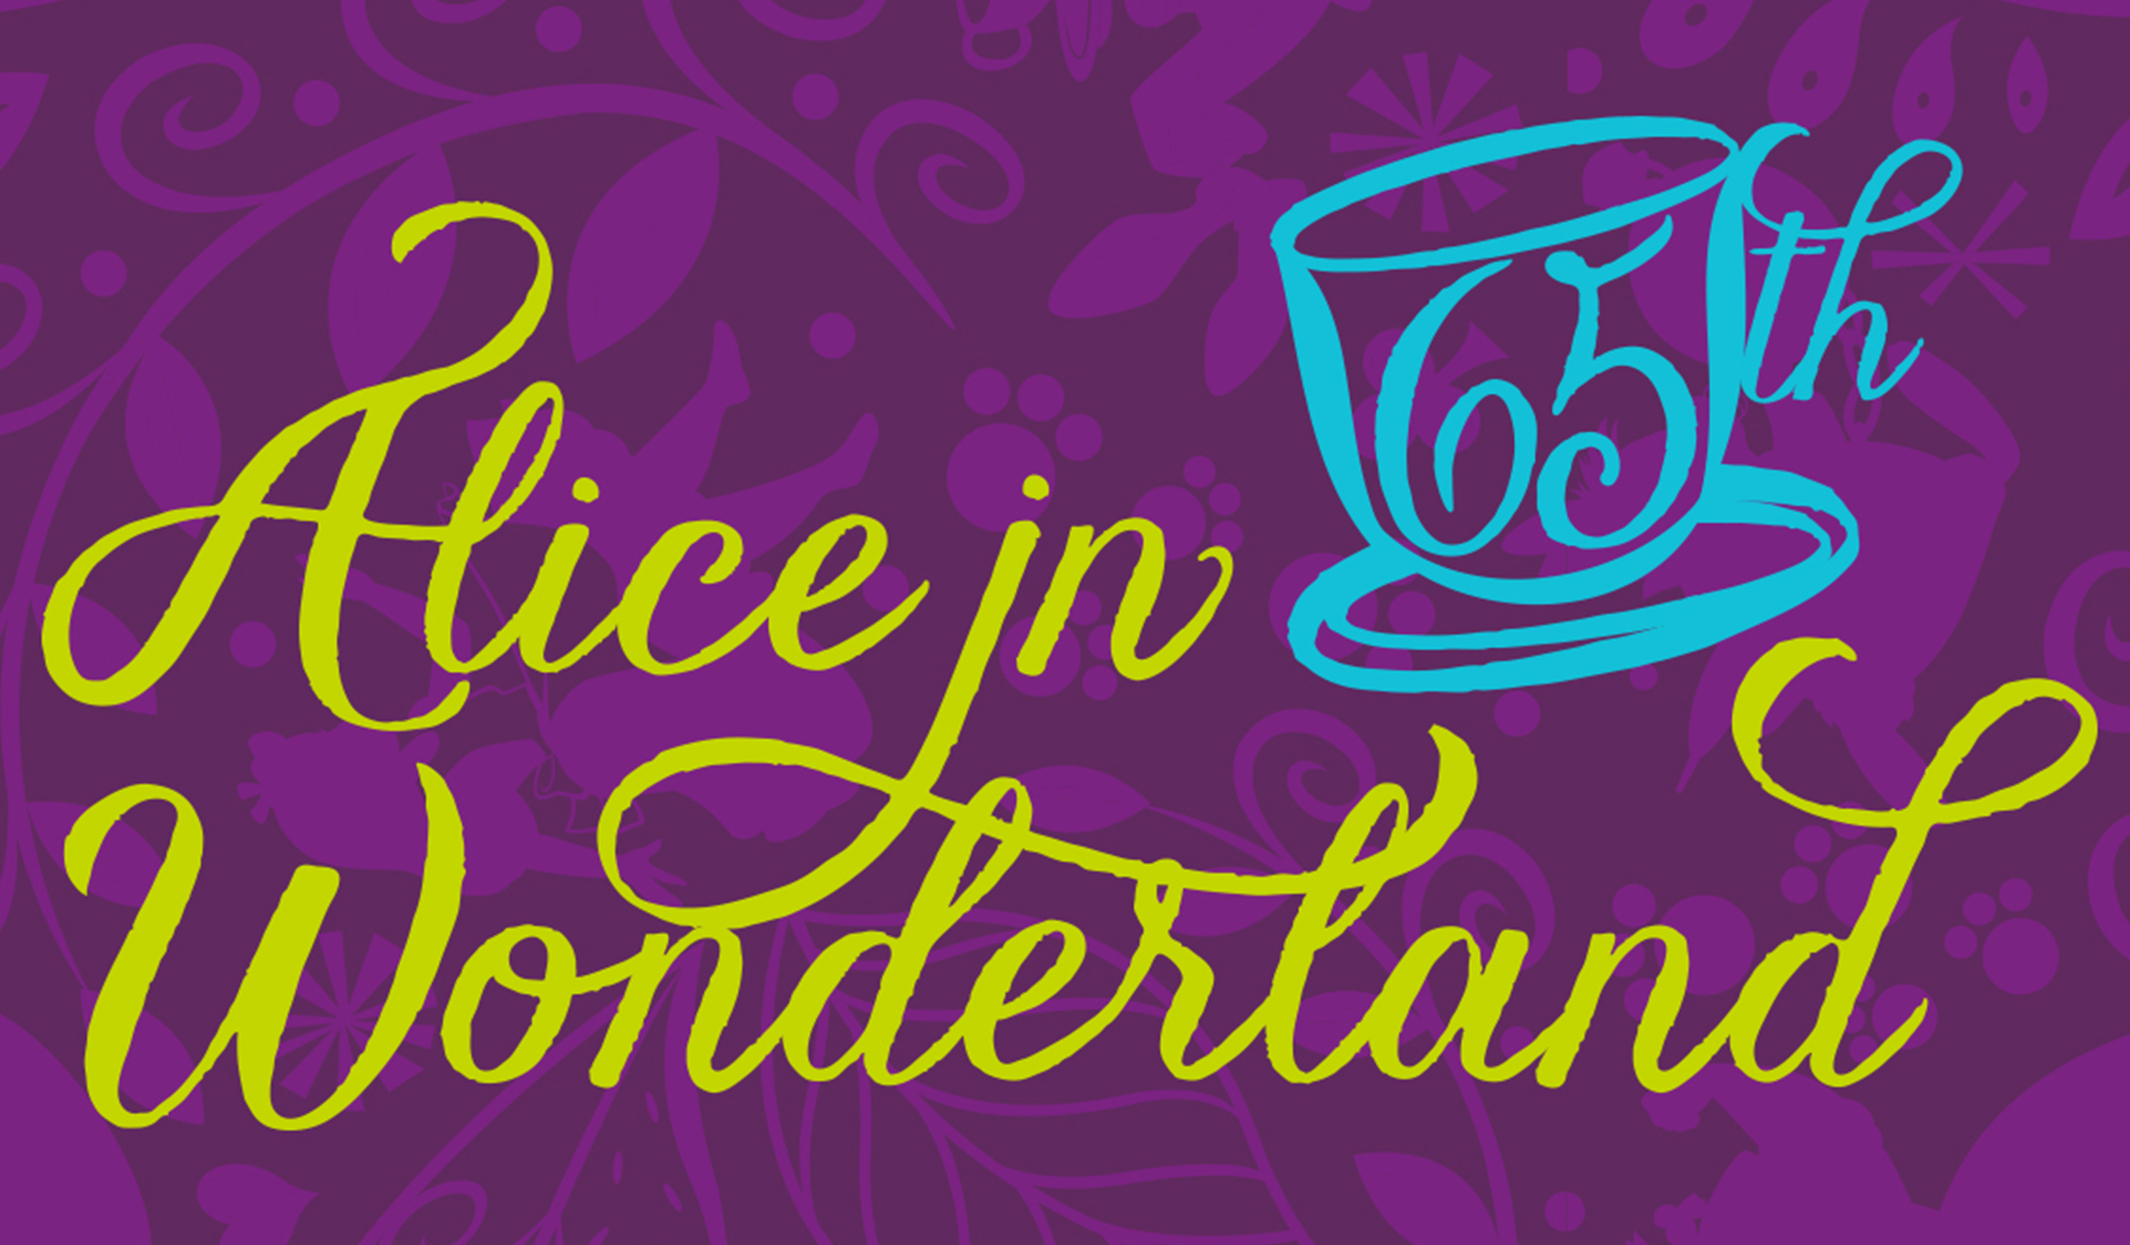 Alice In Wonderland 65th Anniversary Limited Edition Pin Releases